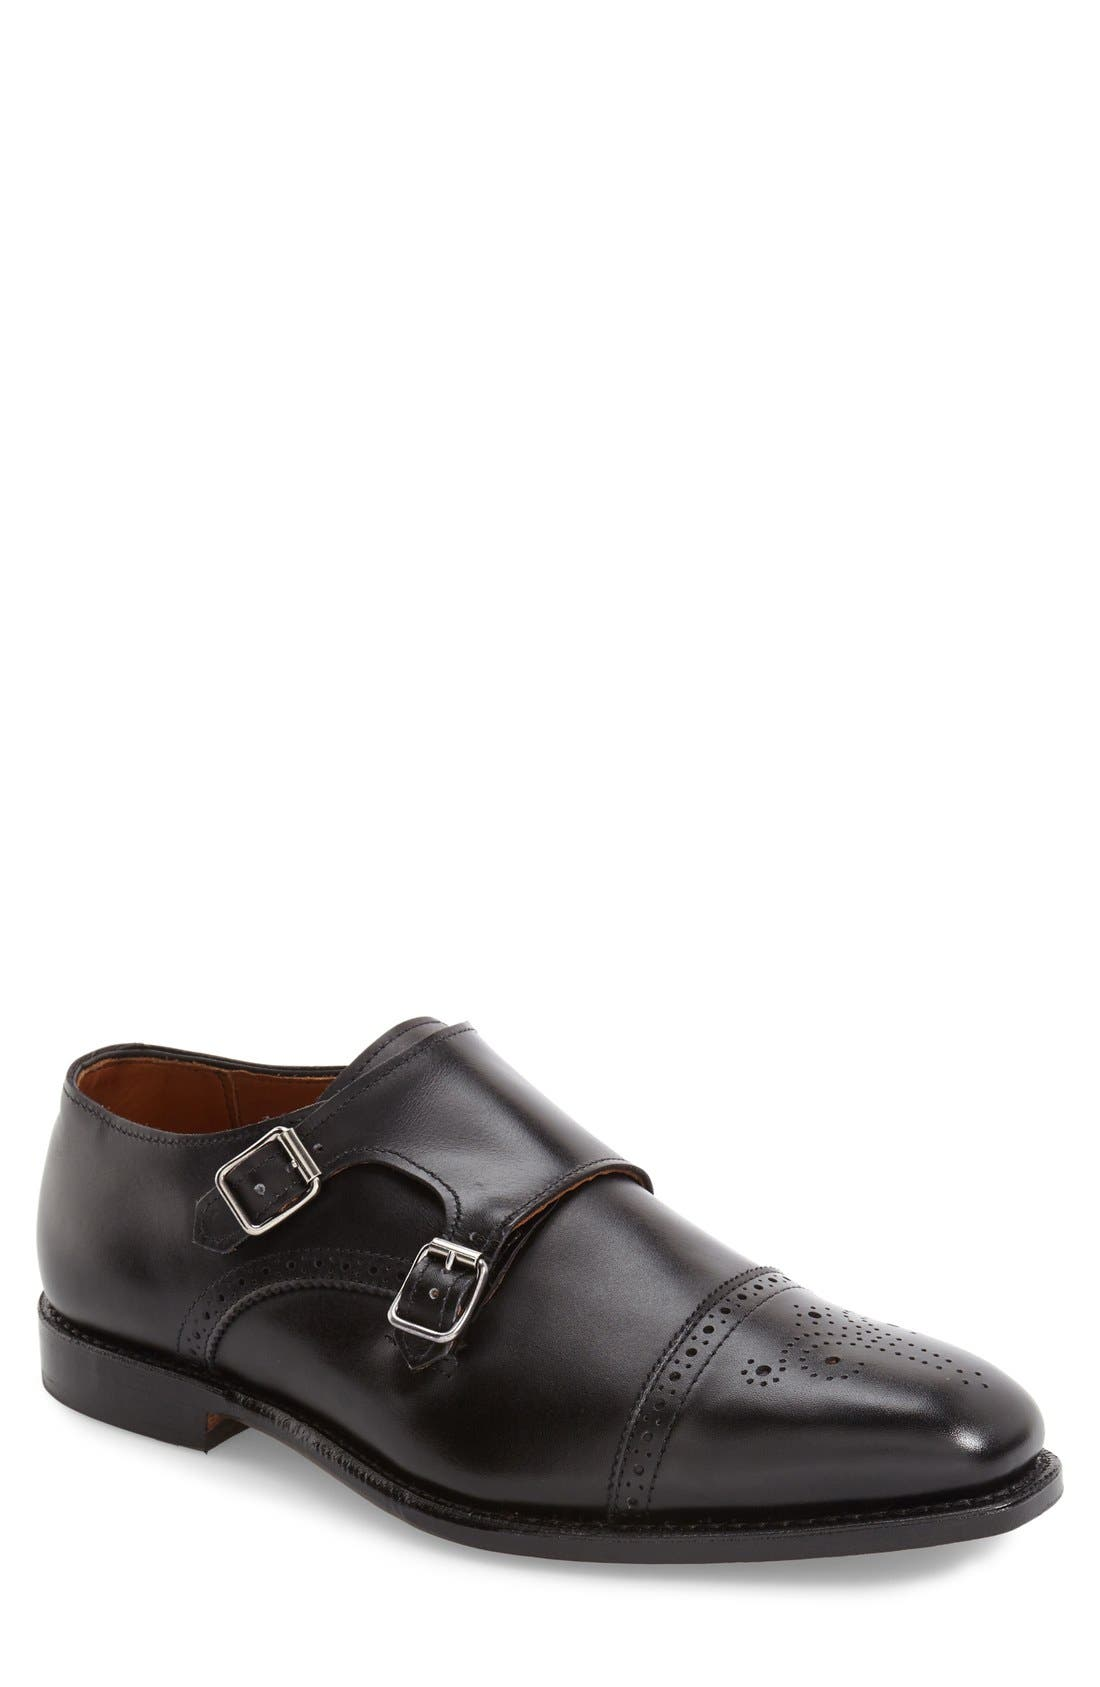 Richly burnished leather adds upscale color to a bold monk shoe crafted in the USA and stamped with fine broguing for a touch of texture. Style Name: Allen Edmonds \\\'st. Johns\\\' Double Monk Strap Shoe (Men). Style Number: 5179615. Available in stores.